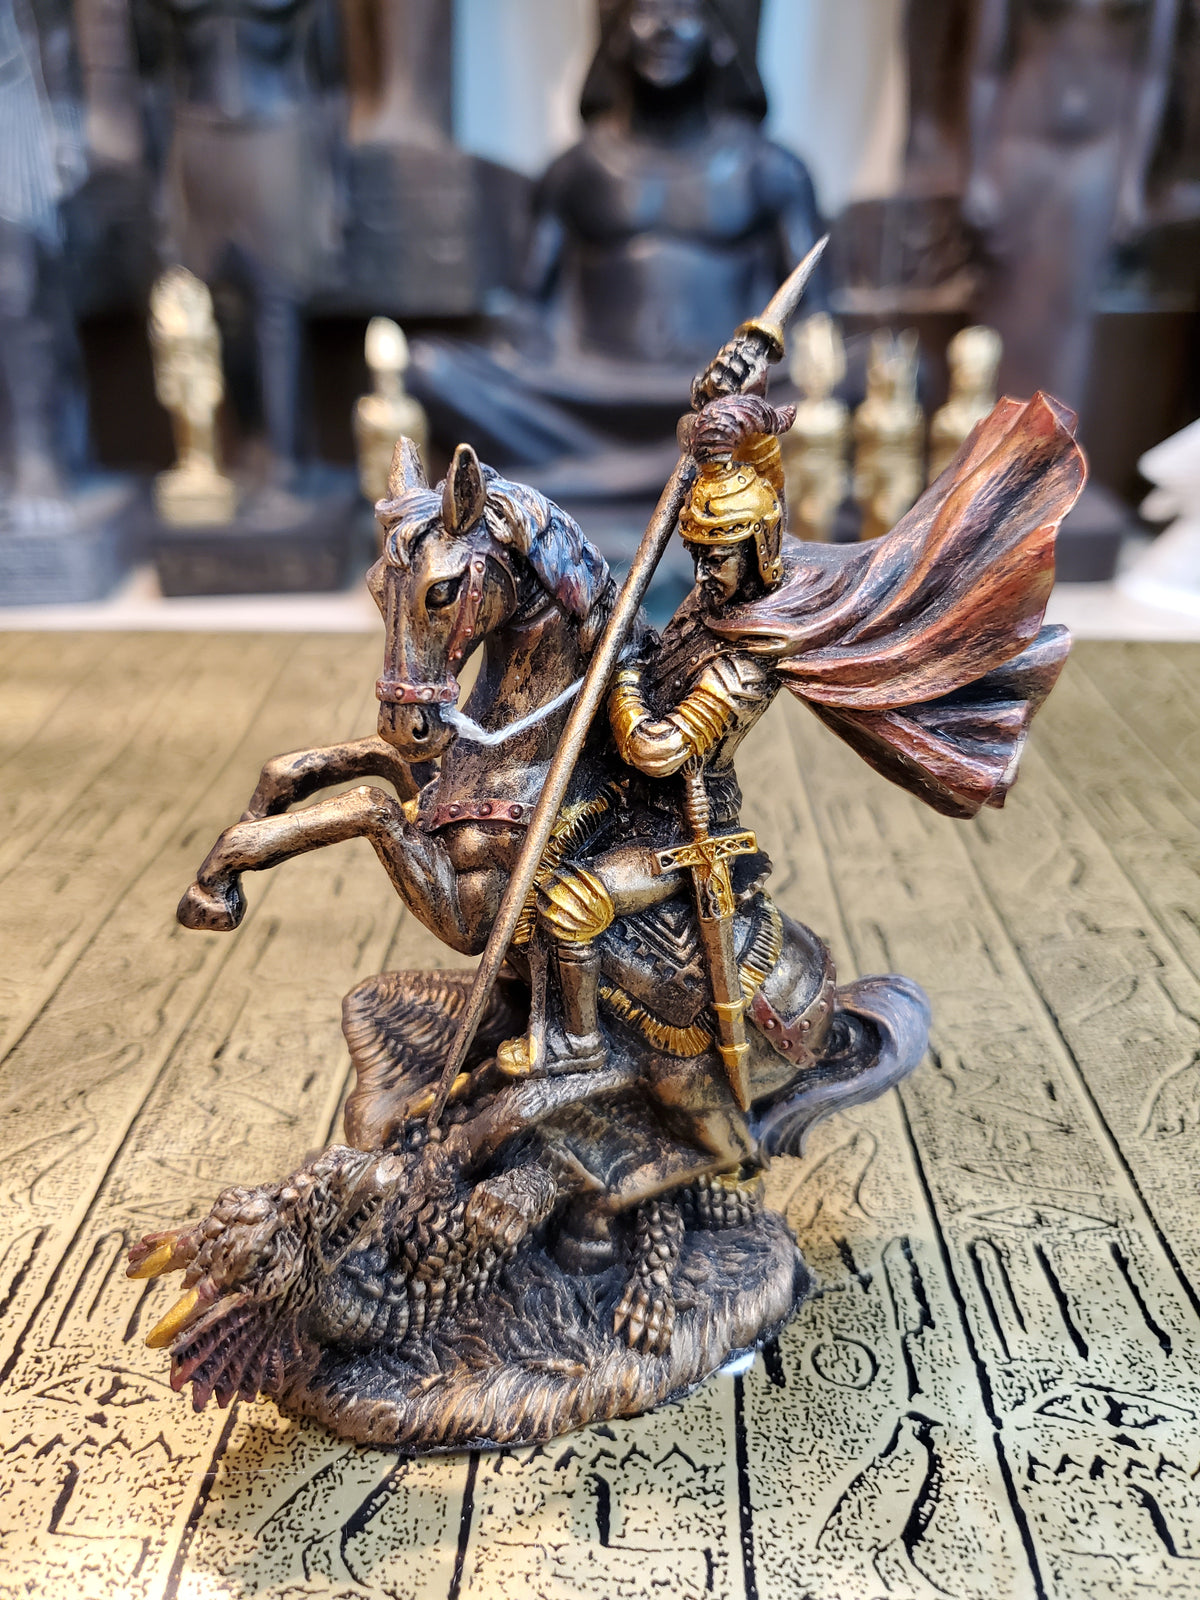 Small Bronze Finish Saint George Statue - Archangel St. George Slaying Dragon